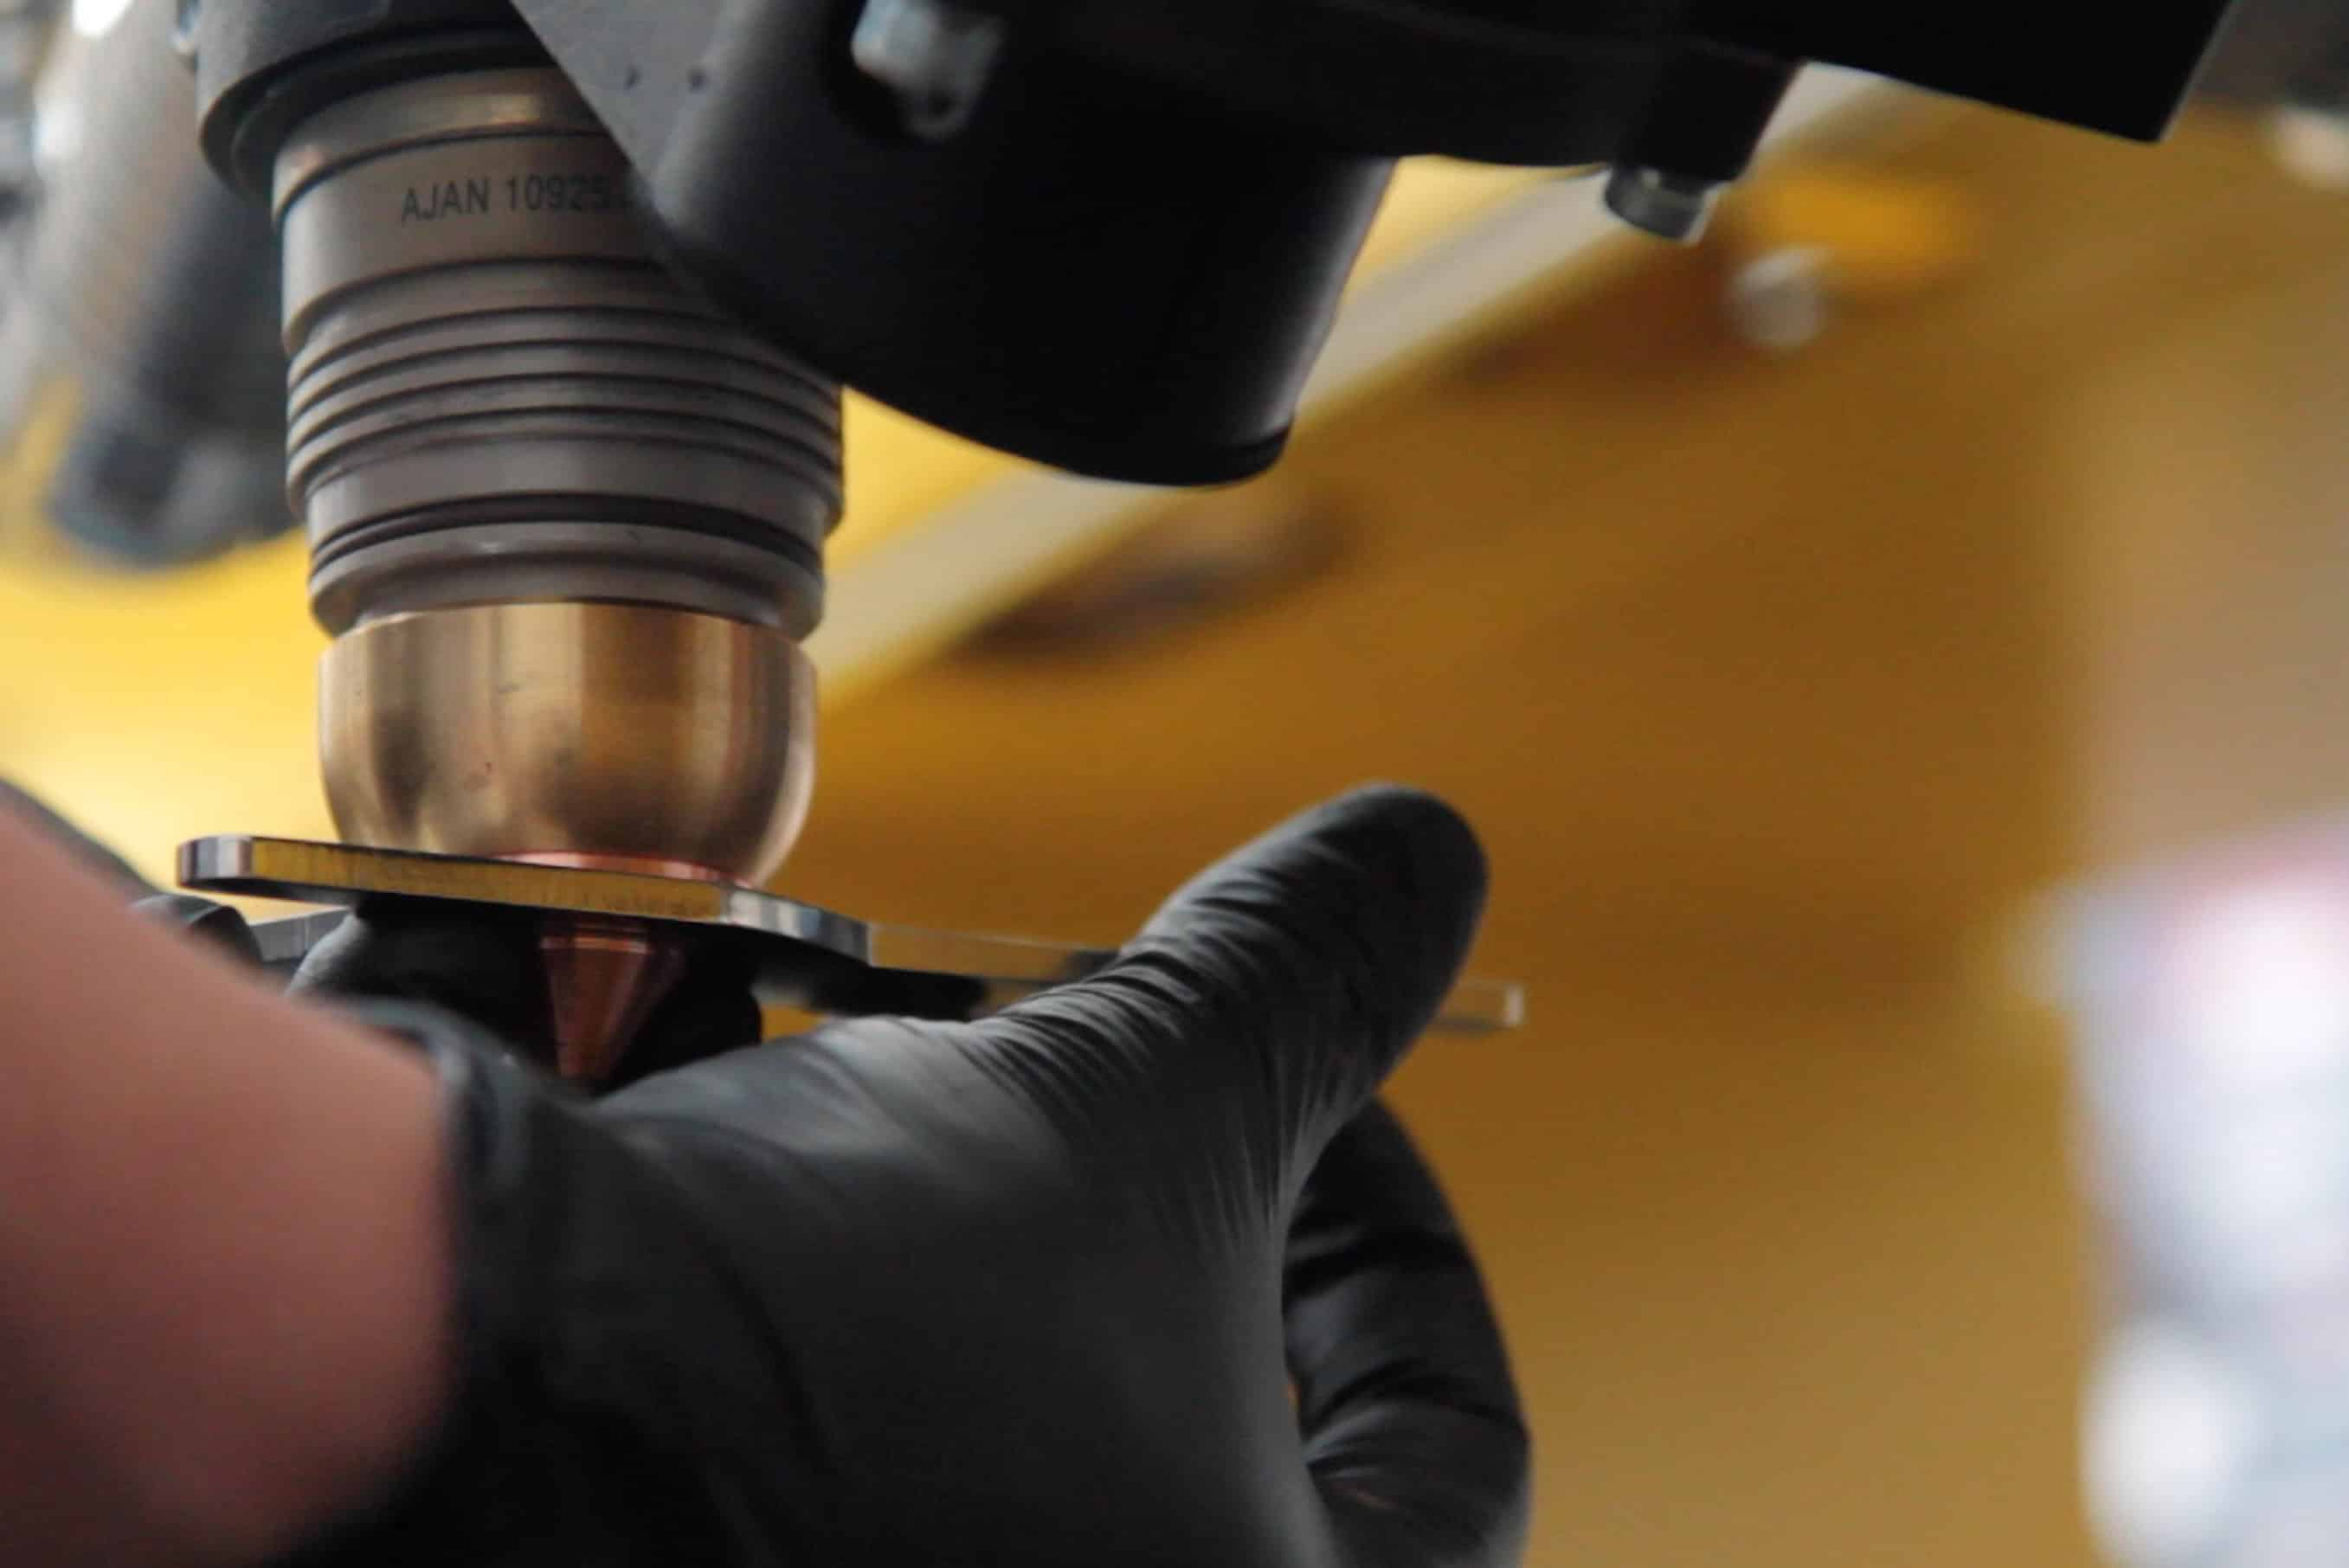 Close up image of a hand removing the Shield Cap on the Ajan Plasma Torch